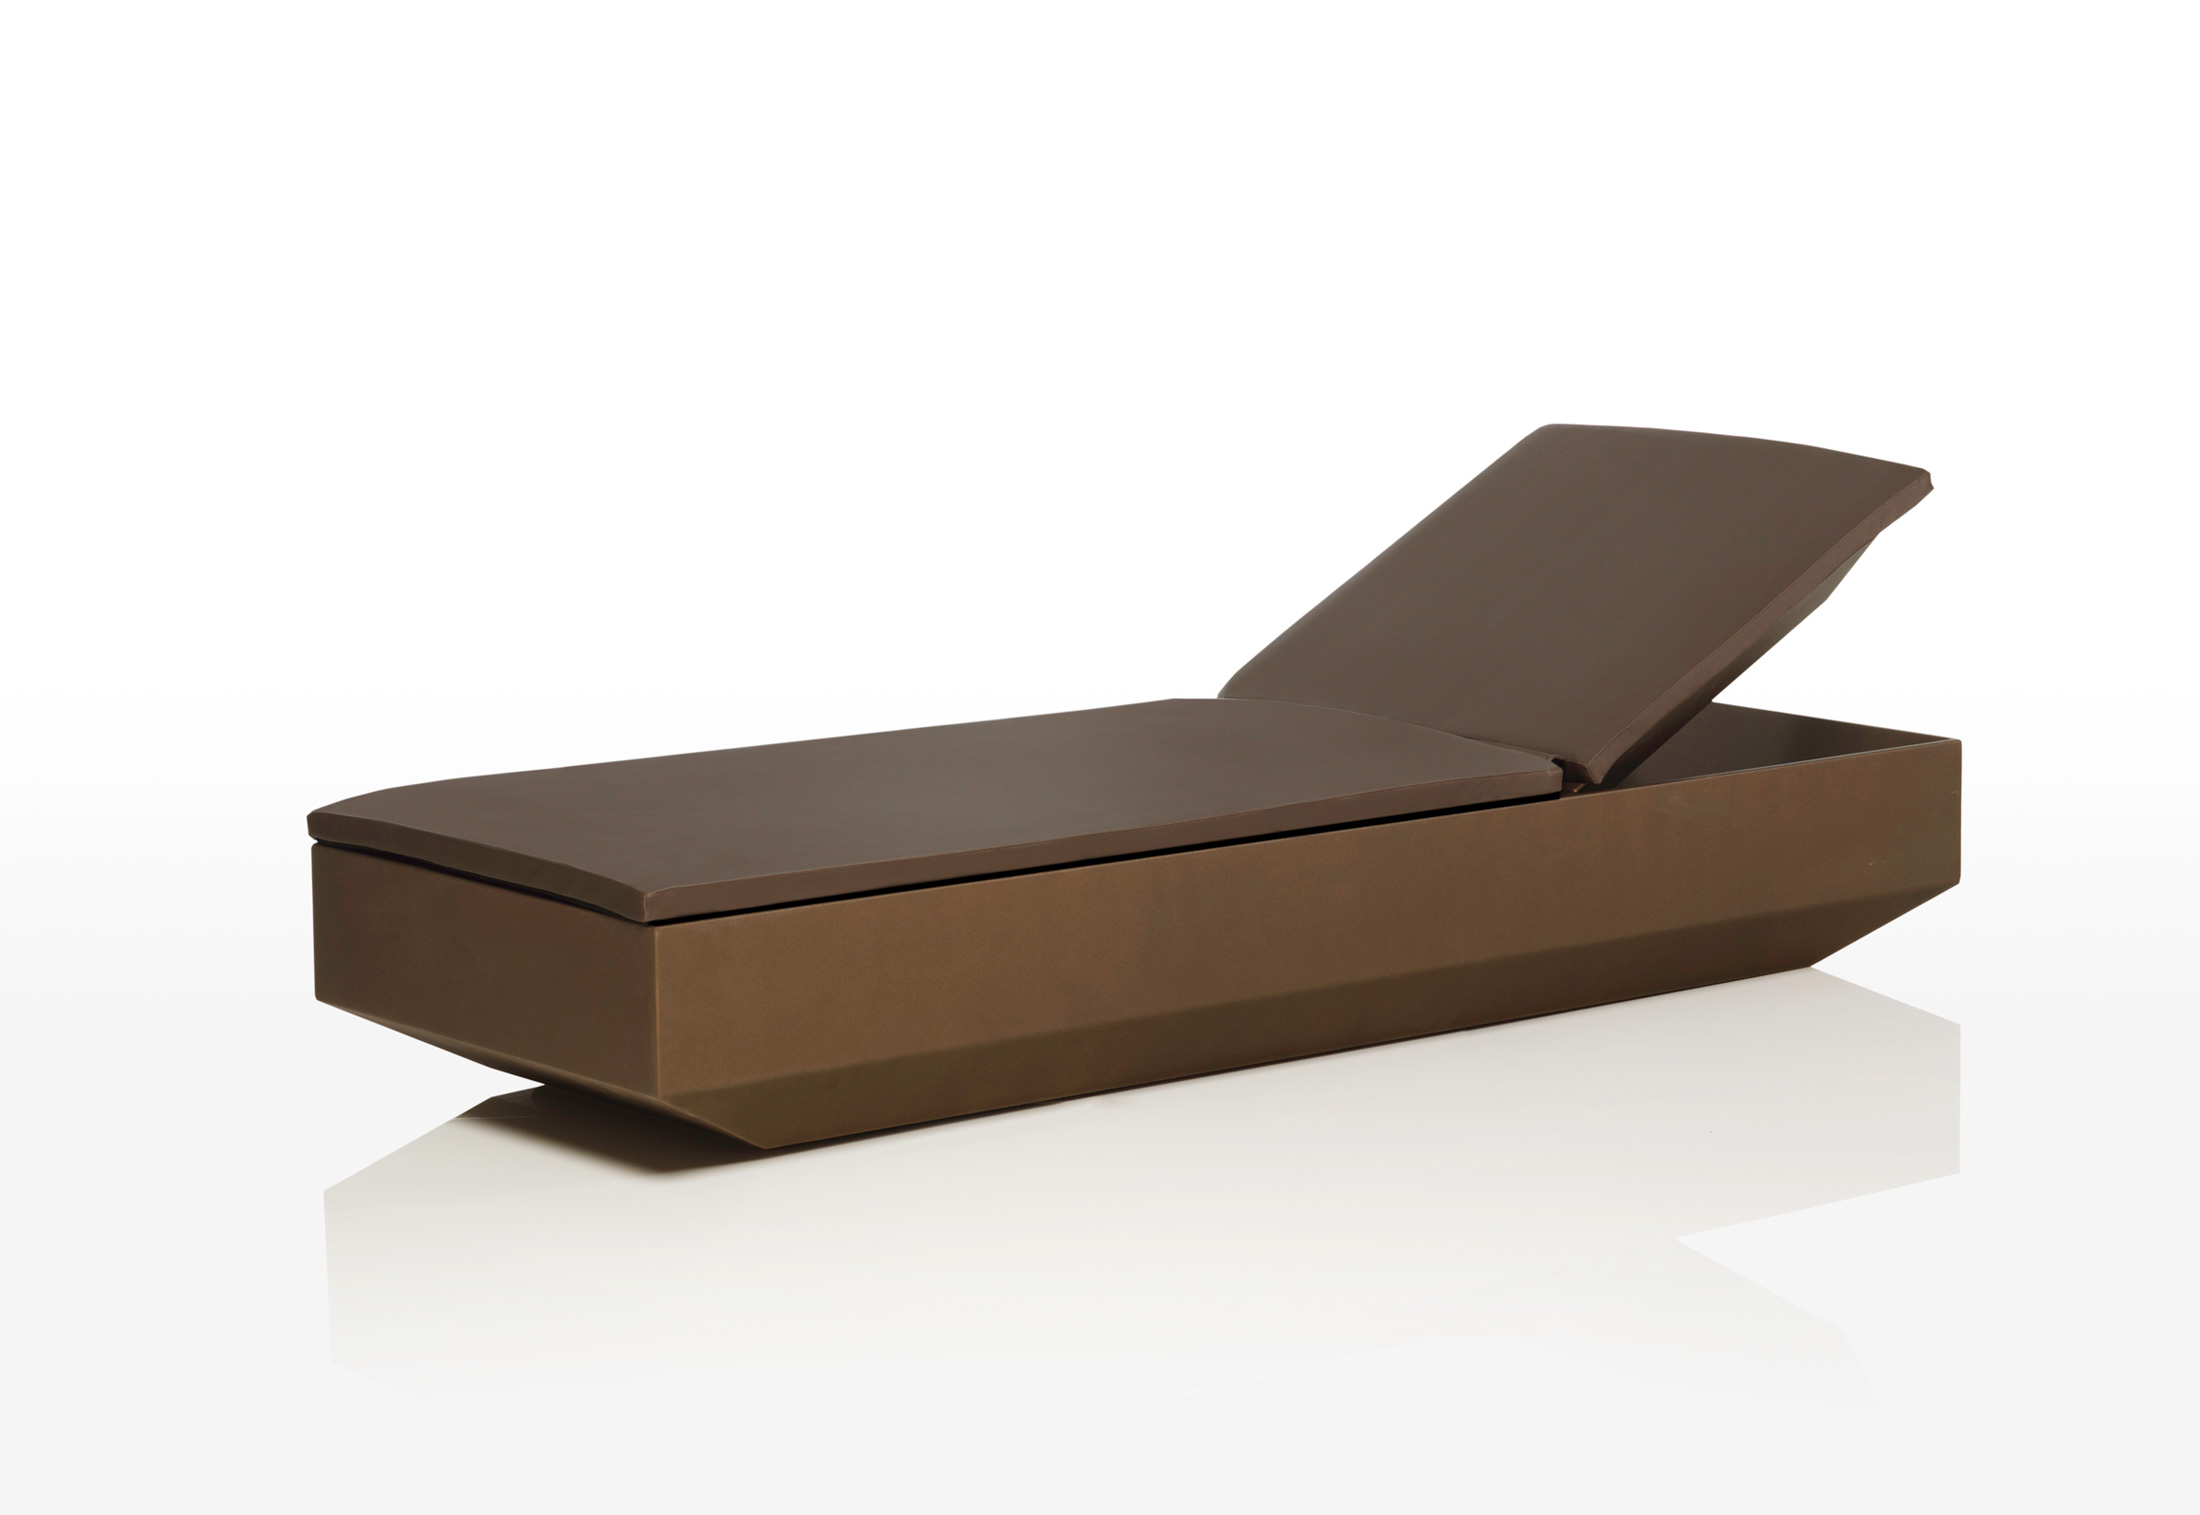 Vela chaise lounge by vondom stylepark for Chaise lounge construction